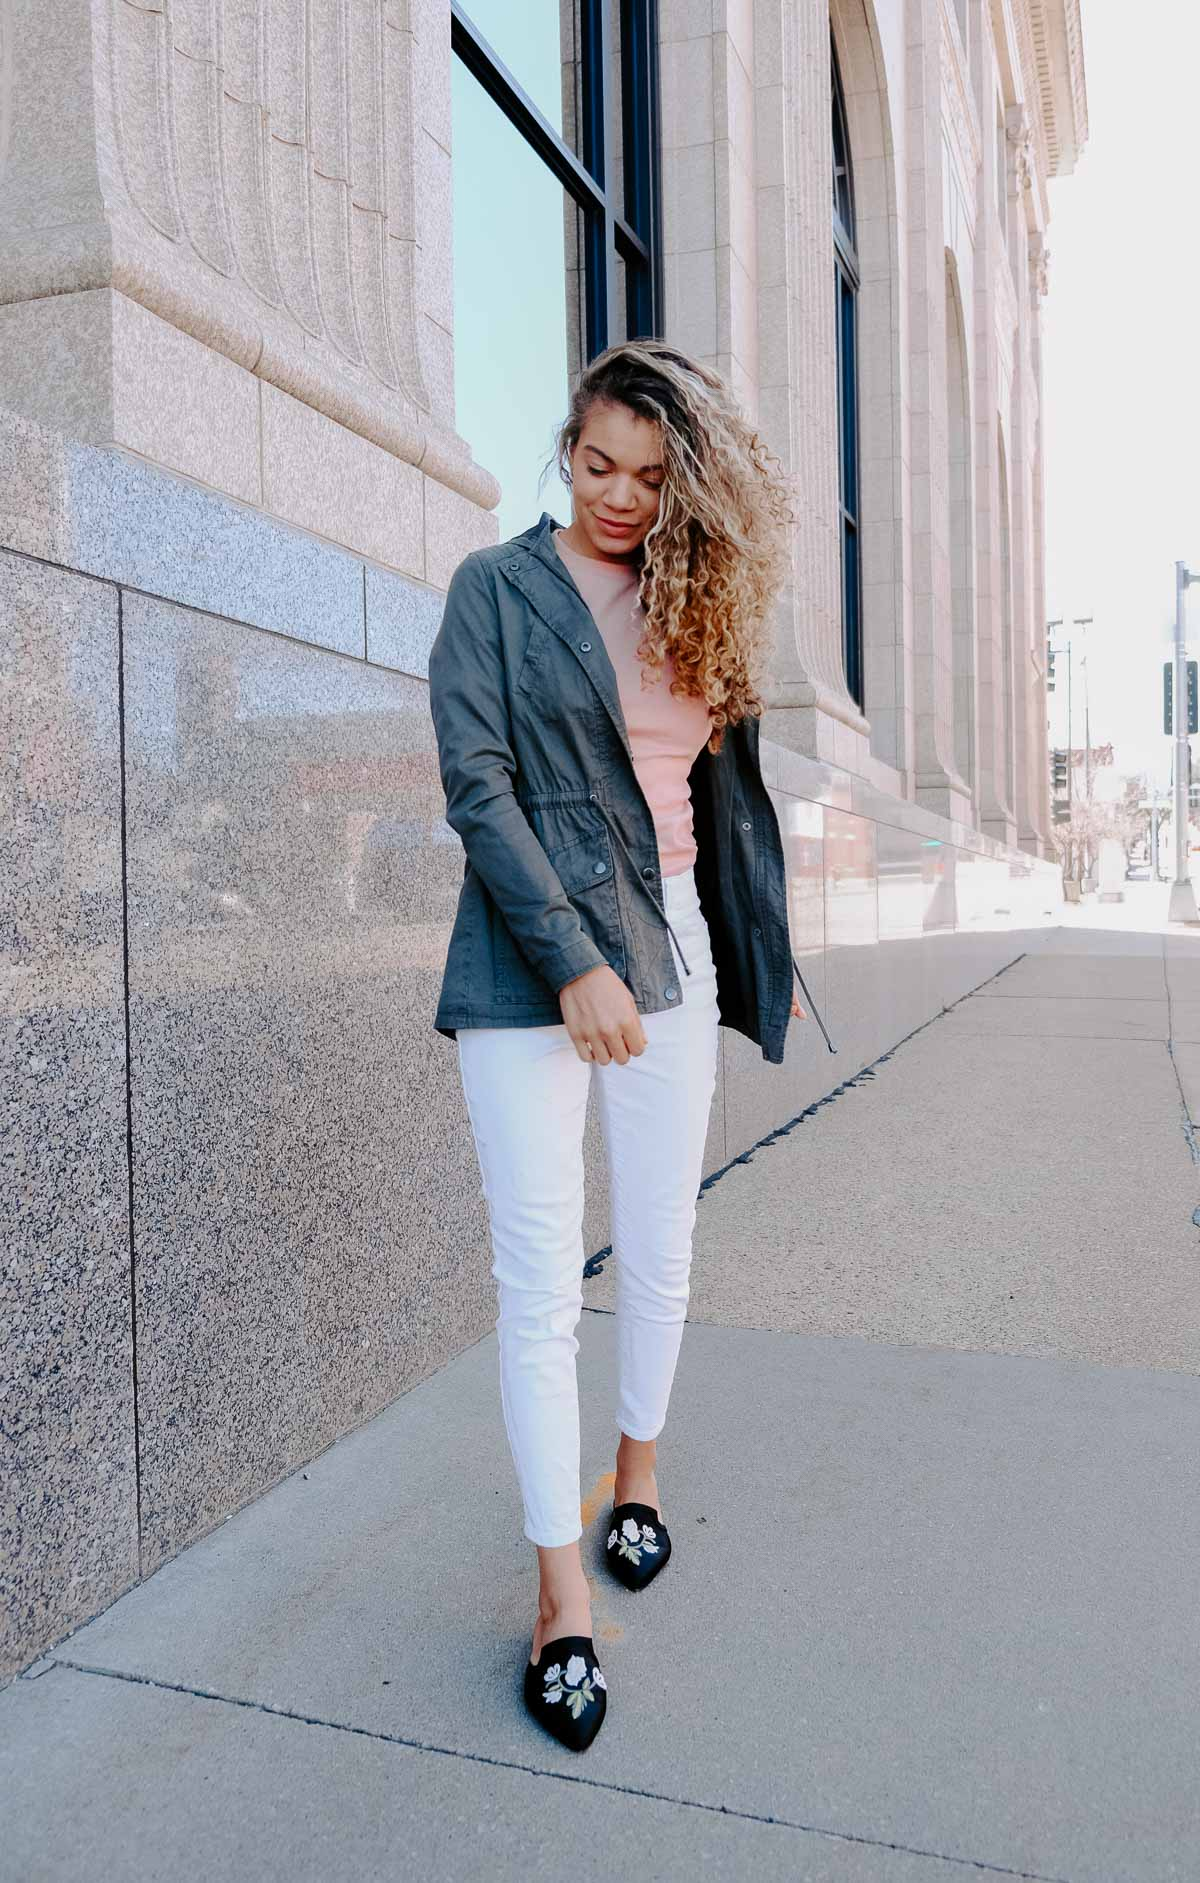 white jeans with a pink top and a utility jacket makes the perfect spring and summer outfit!